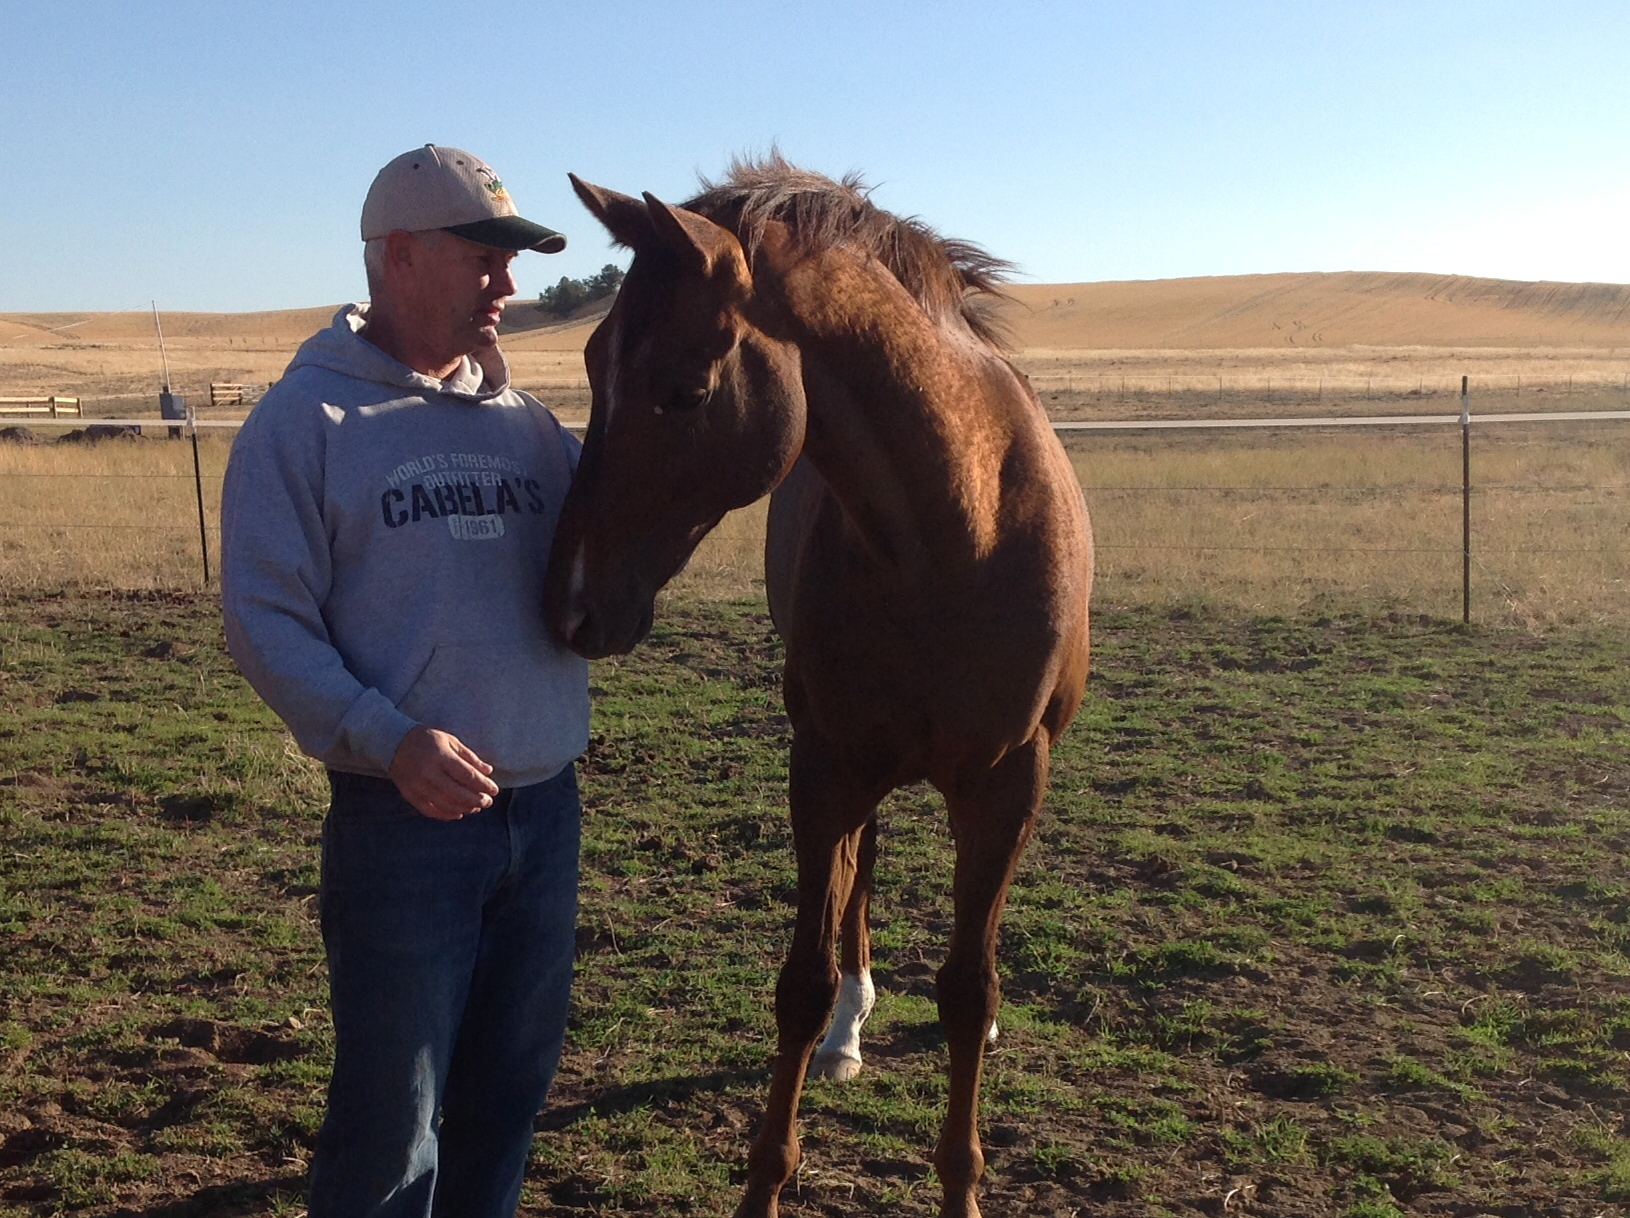 Down The Stretch Bond Between Horses Vets A Win For